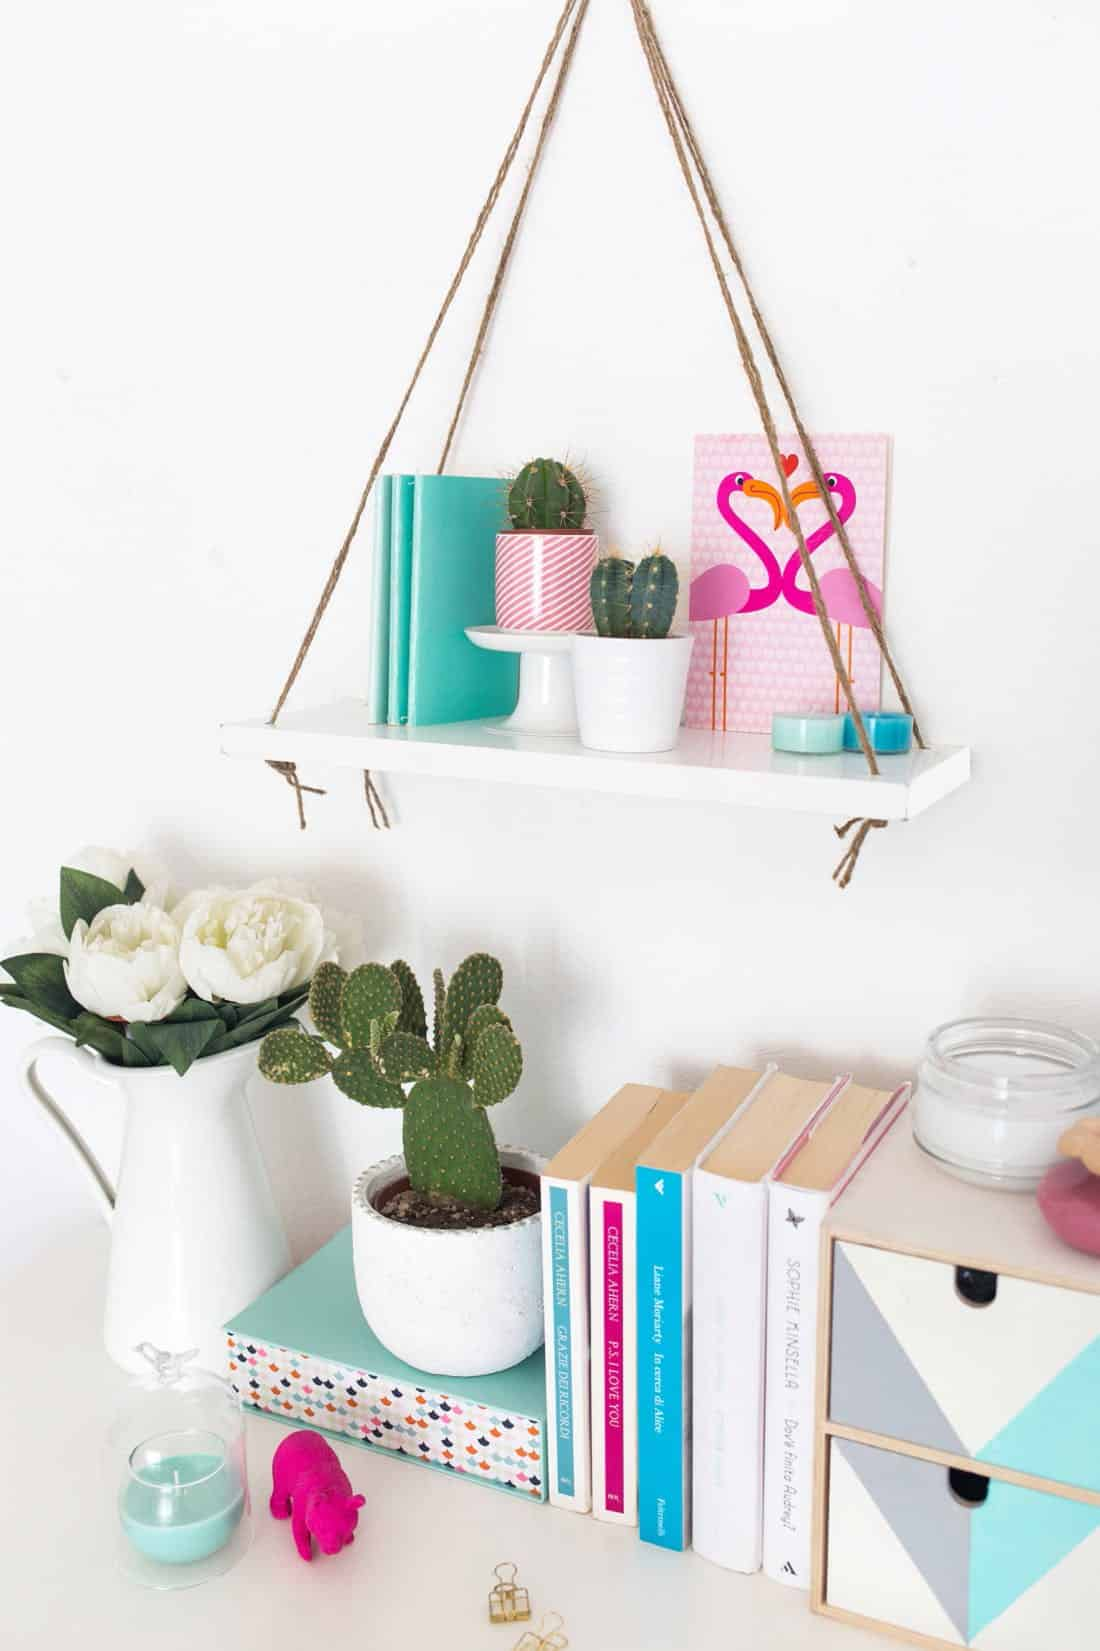 Diy swing shelf